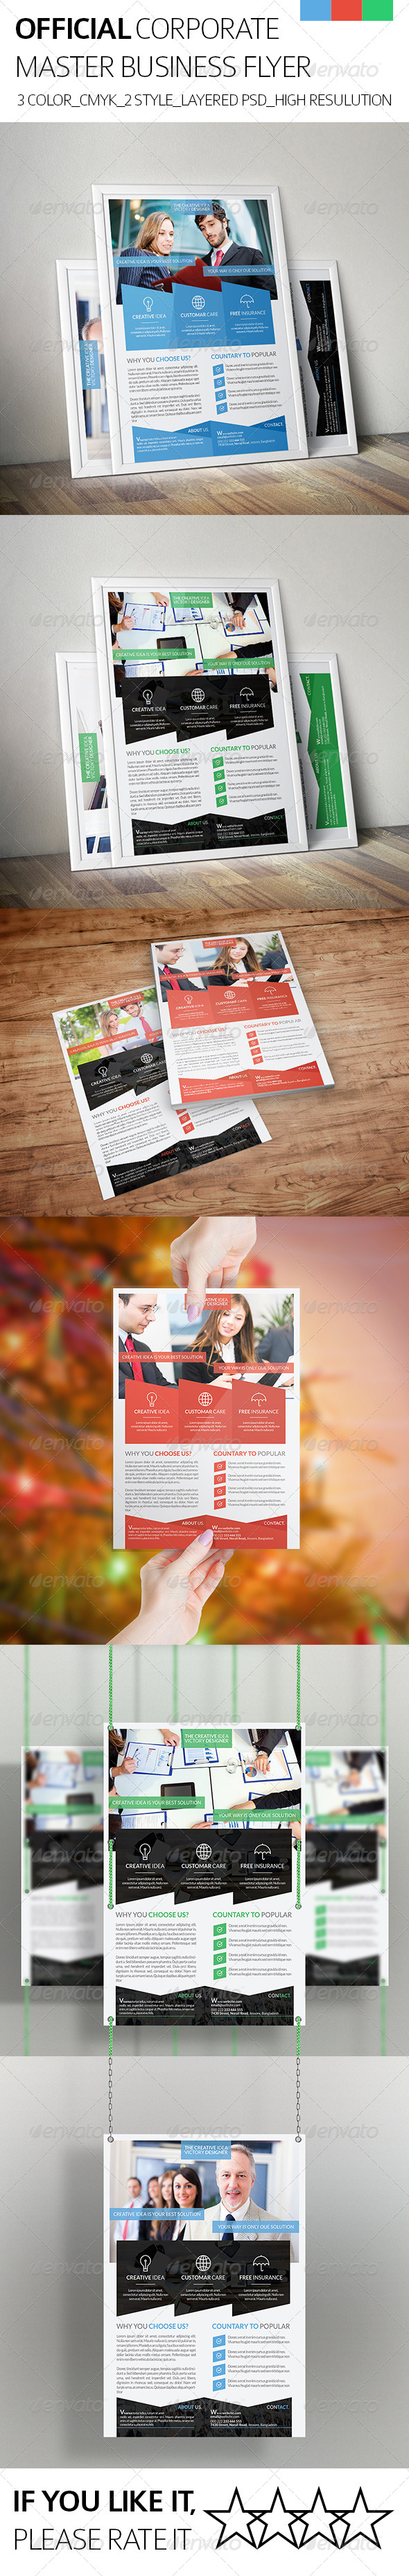 Official & Corporate Business Flyer - Corporate Flyers